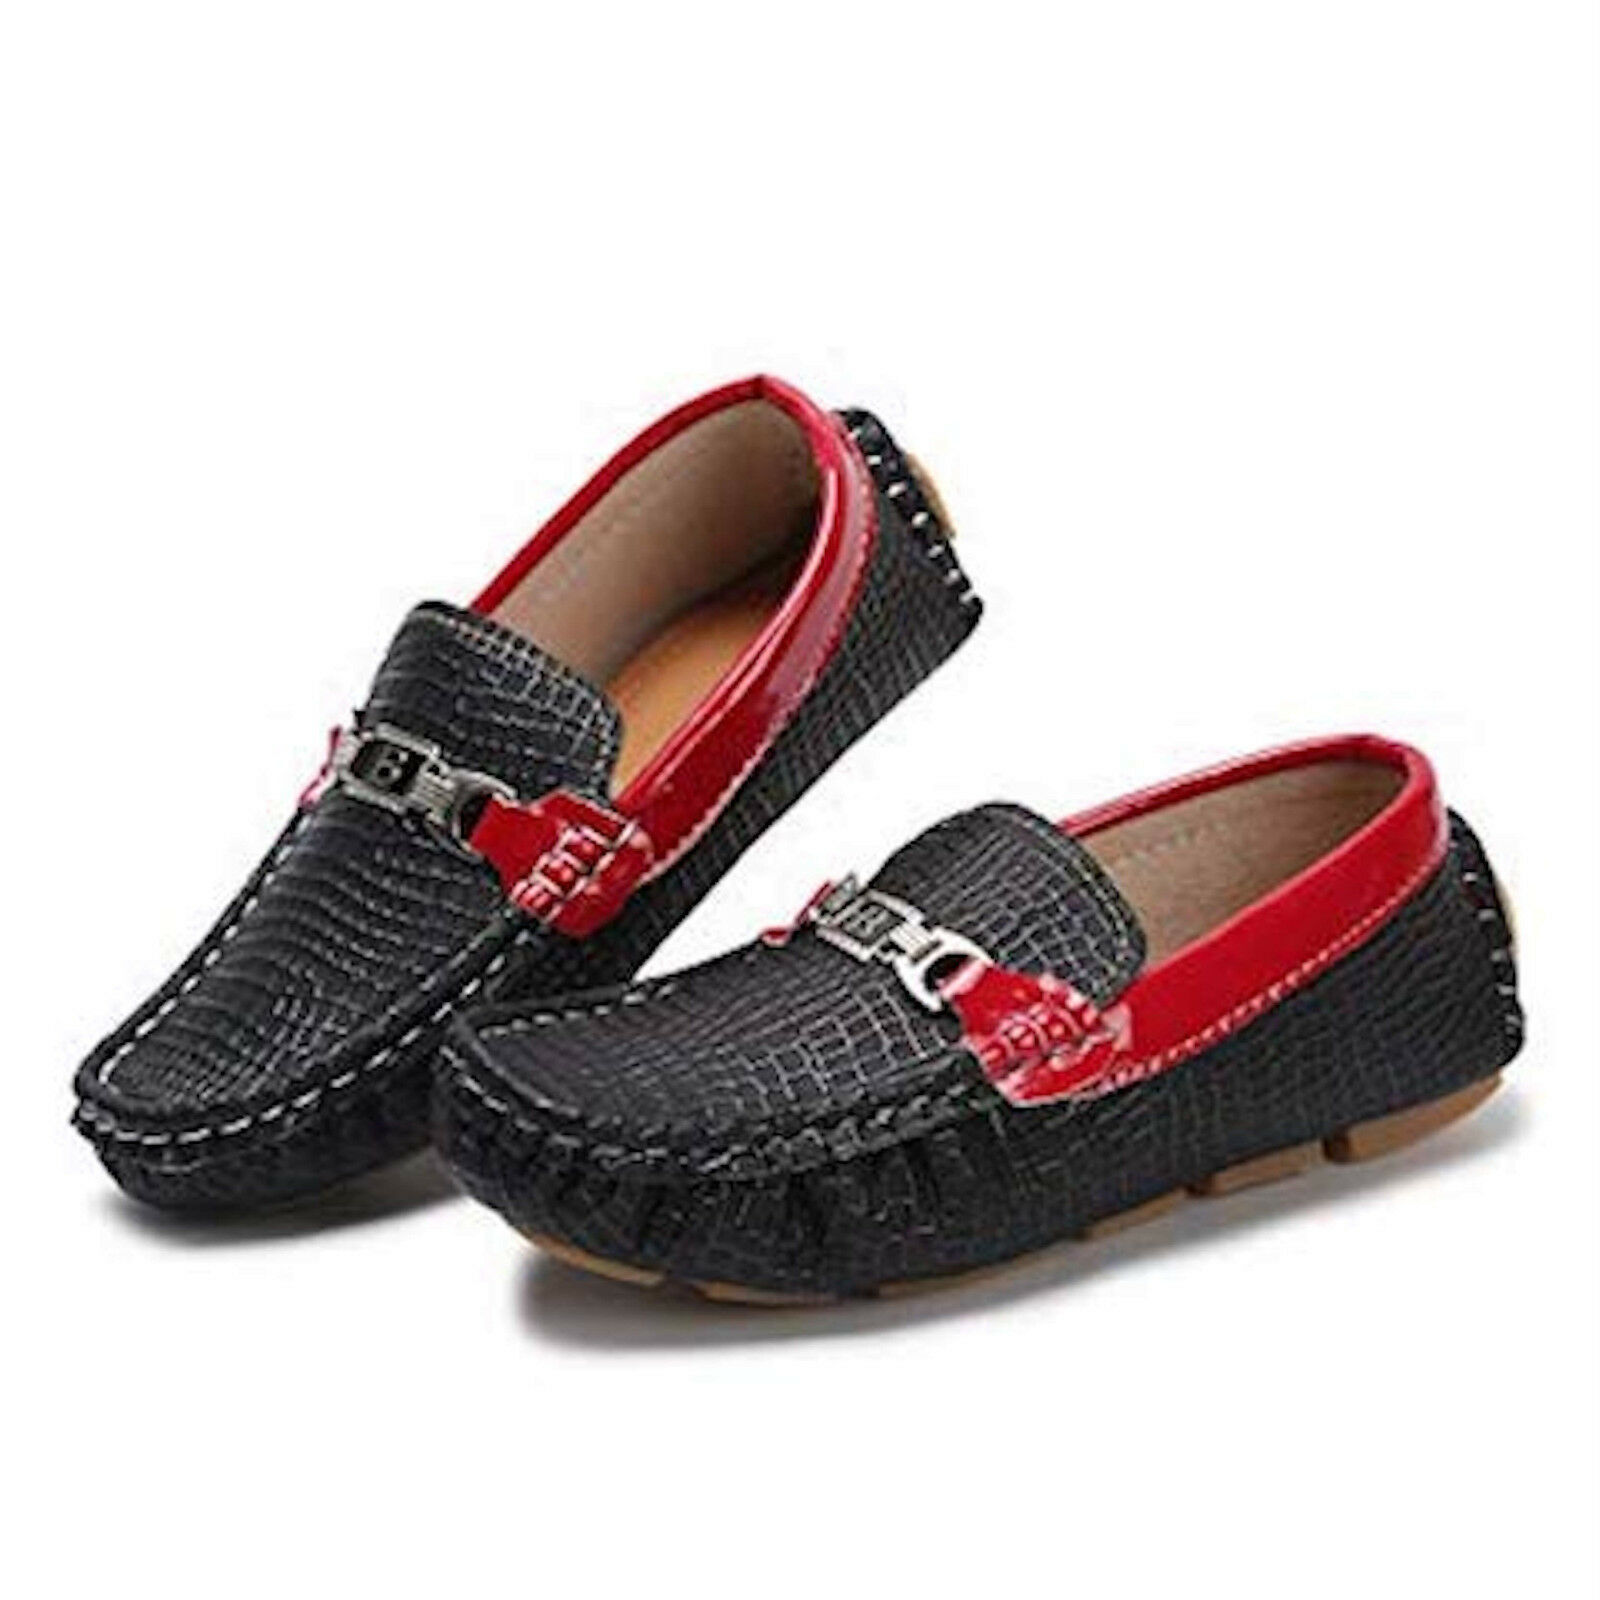 Hawkwell Kids Loafer Moccasin Oxford Driver Shoes  2 M US